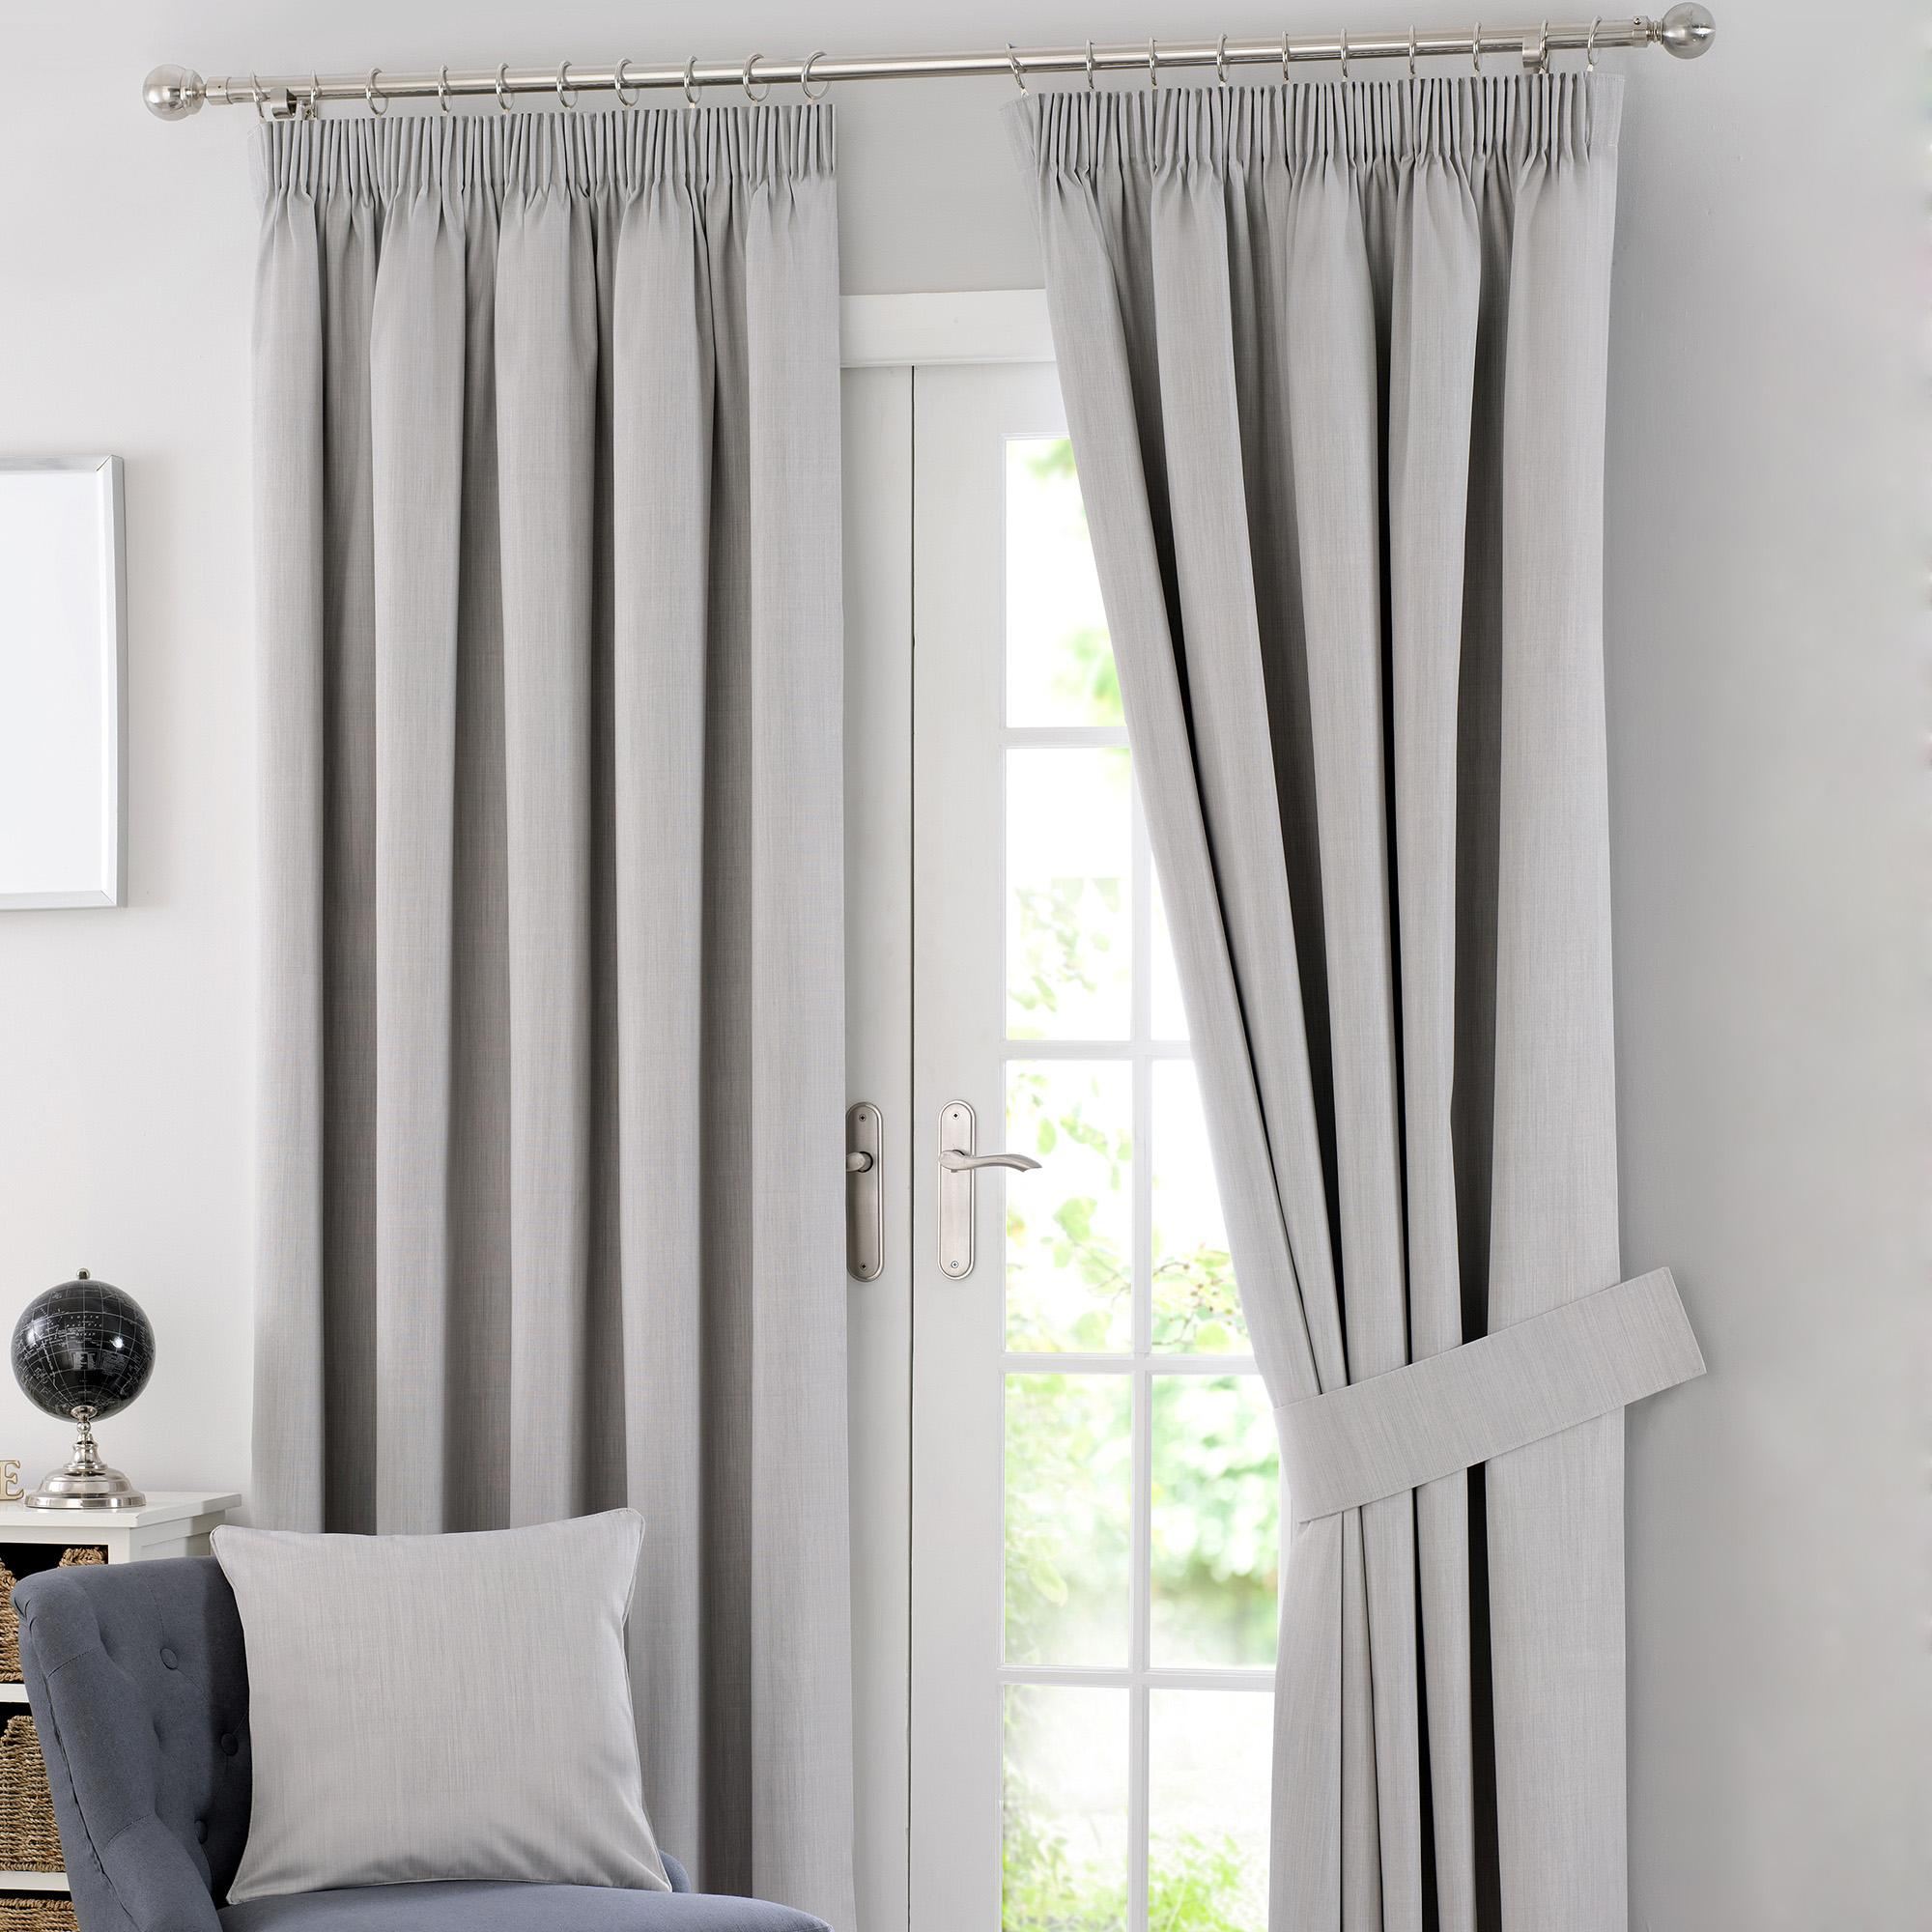 Attractive solar grey blackout pencil pleat curtains hvujdox